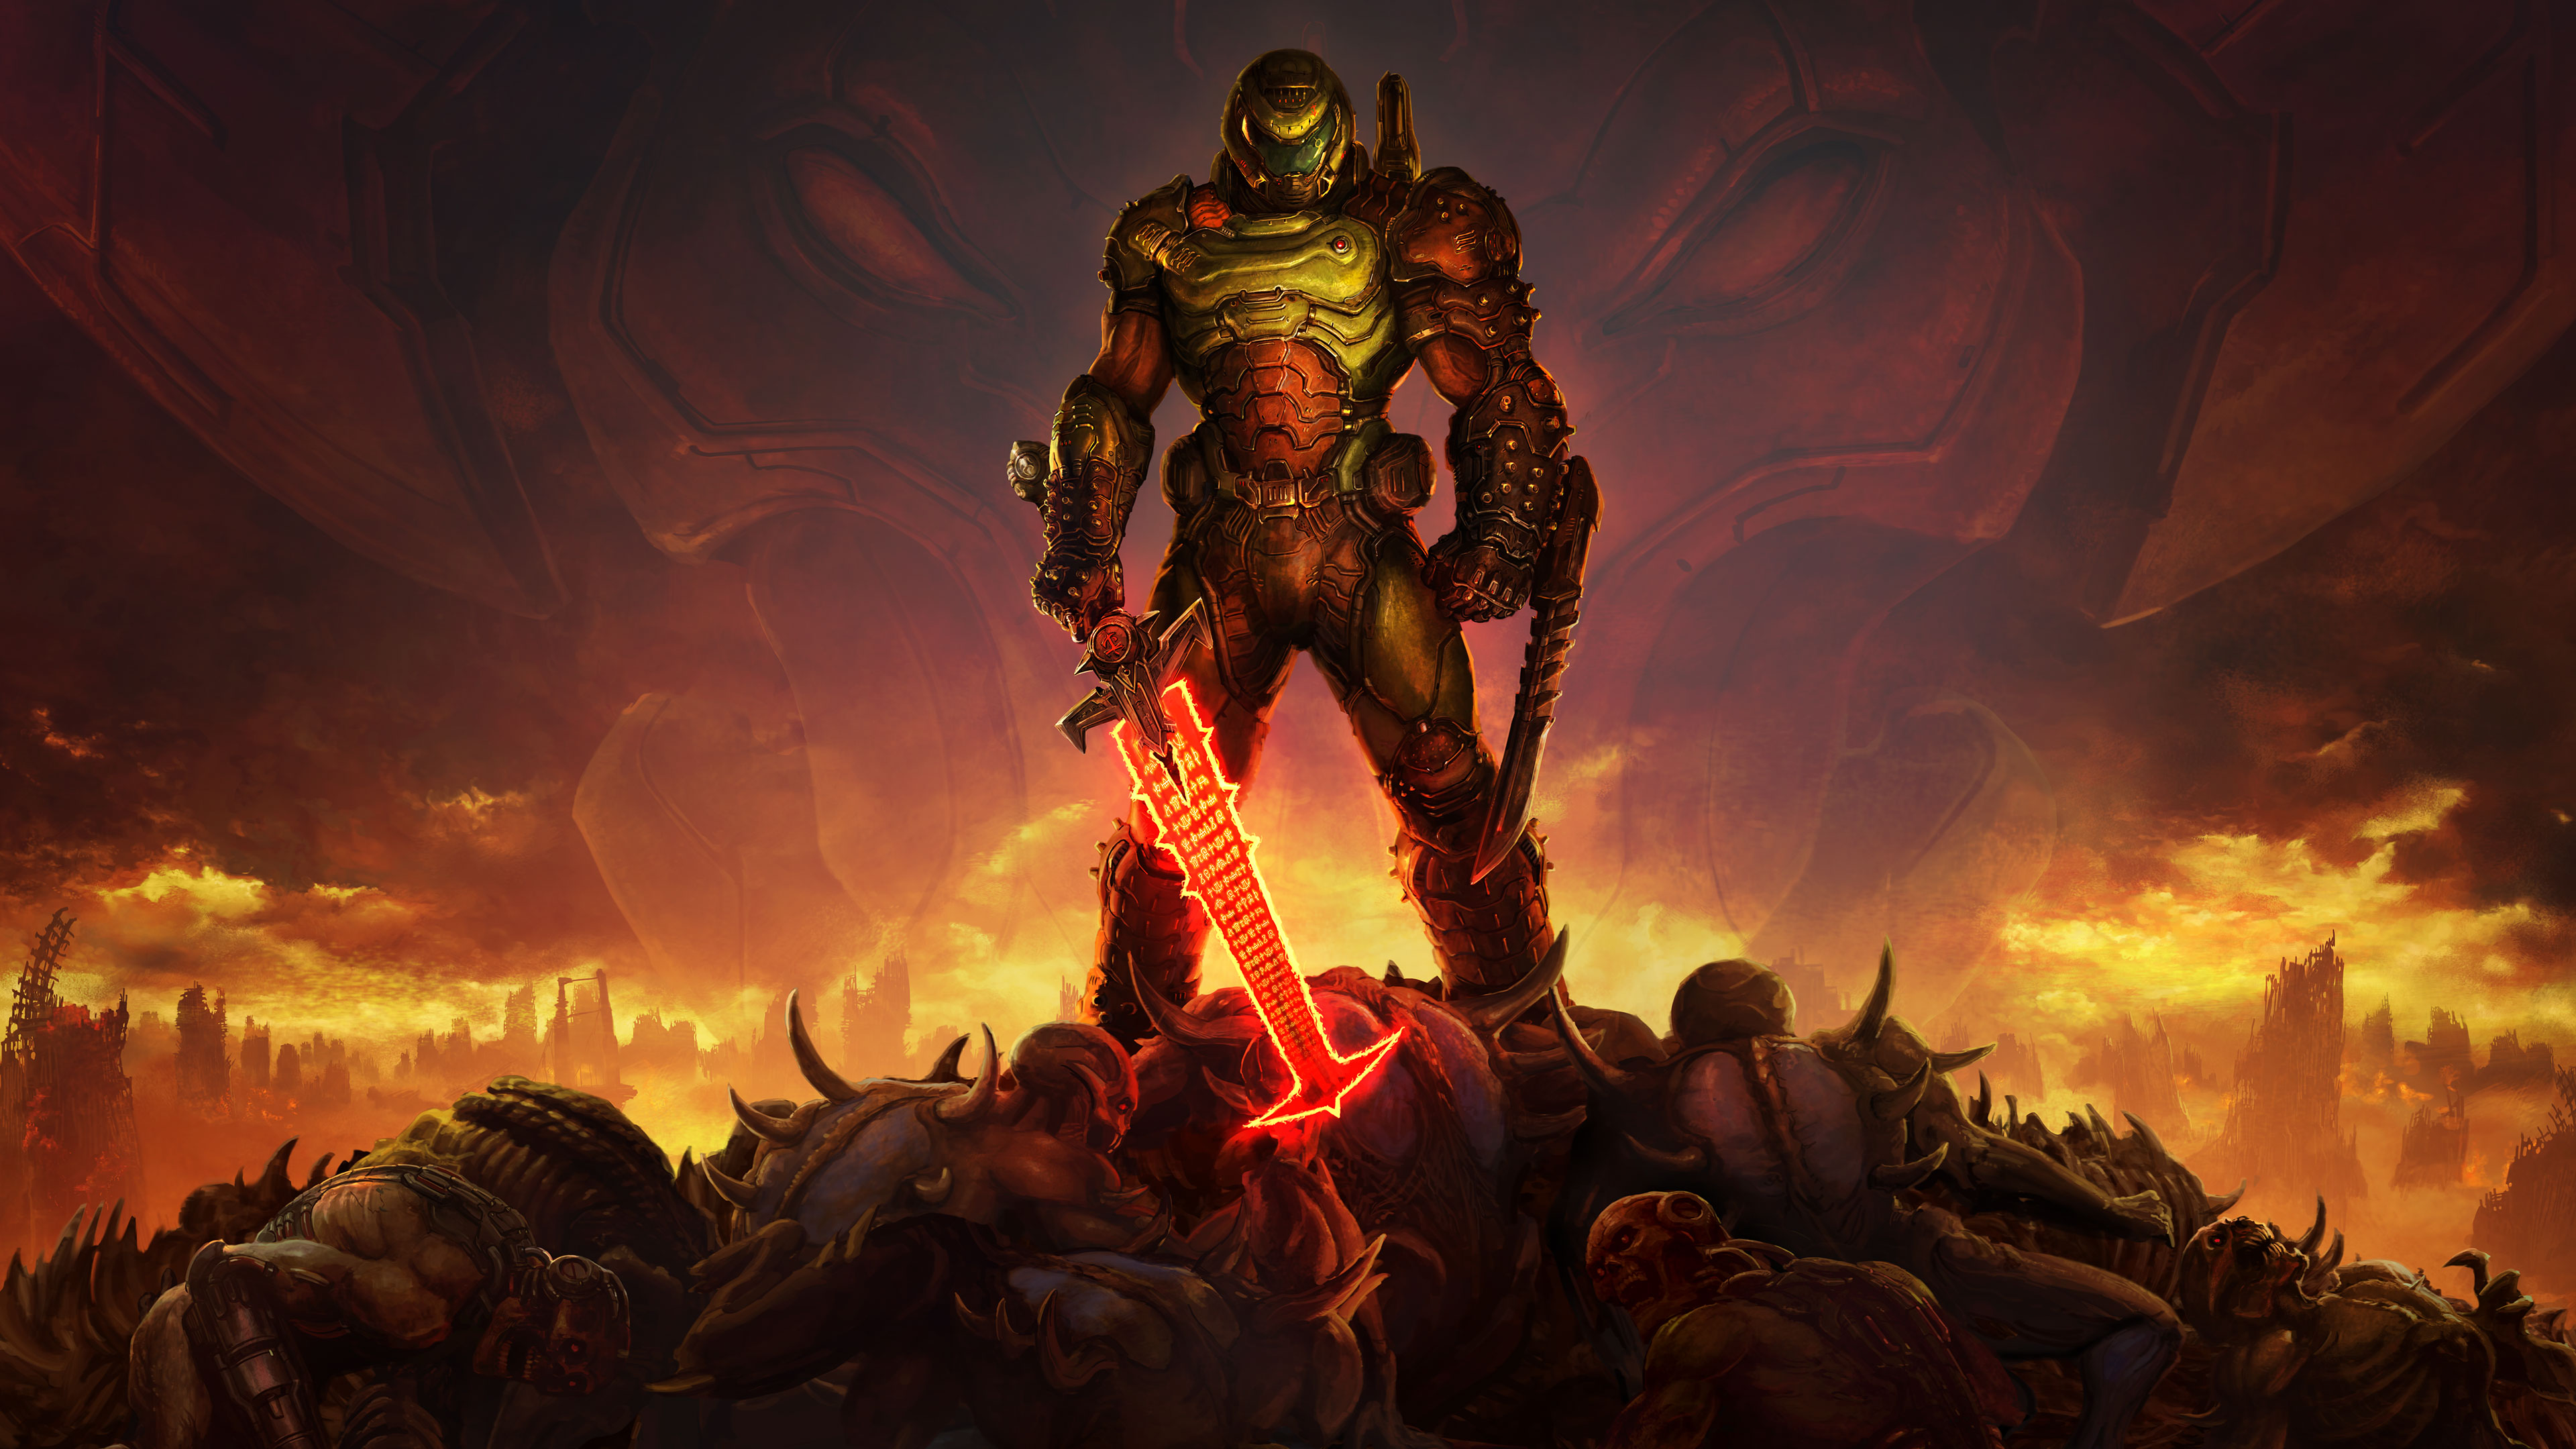 Doom 4k Wallpapers For Your Desktop Or Mobile Screen Free And Easy To Download